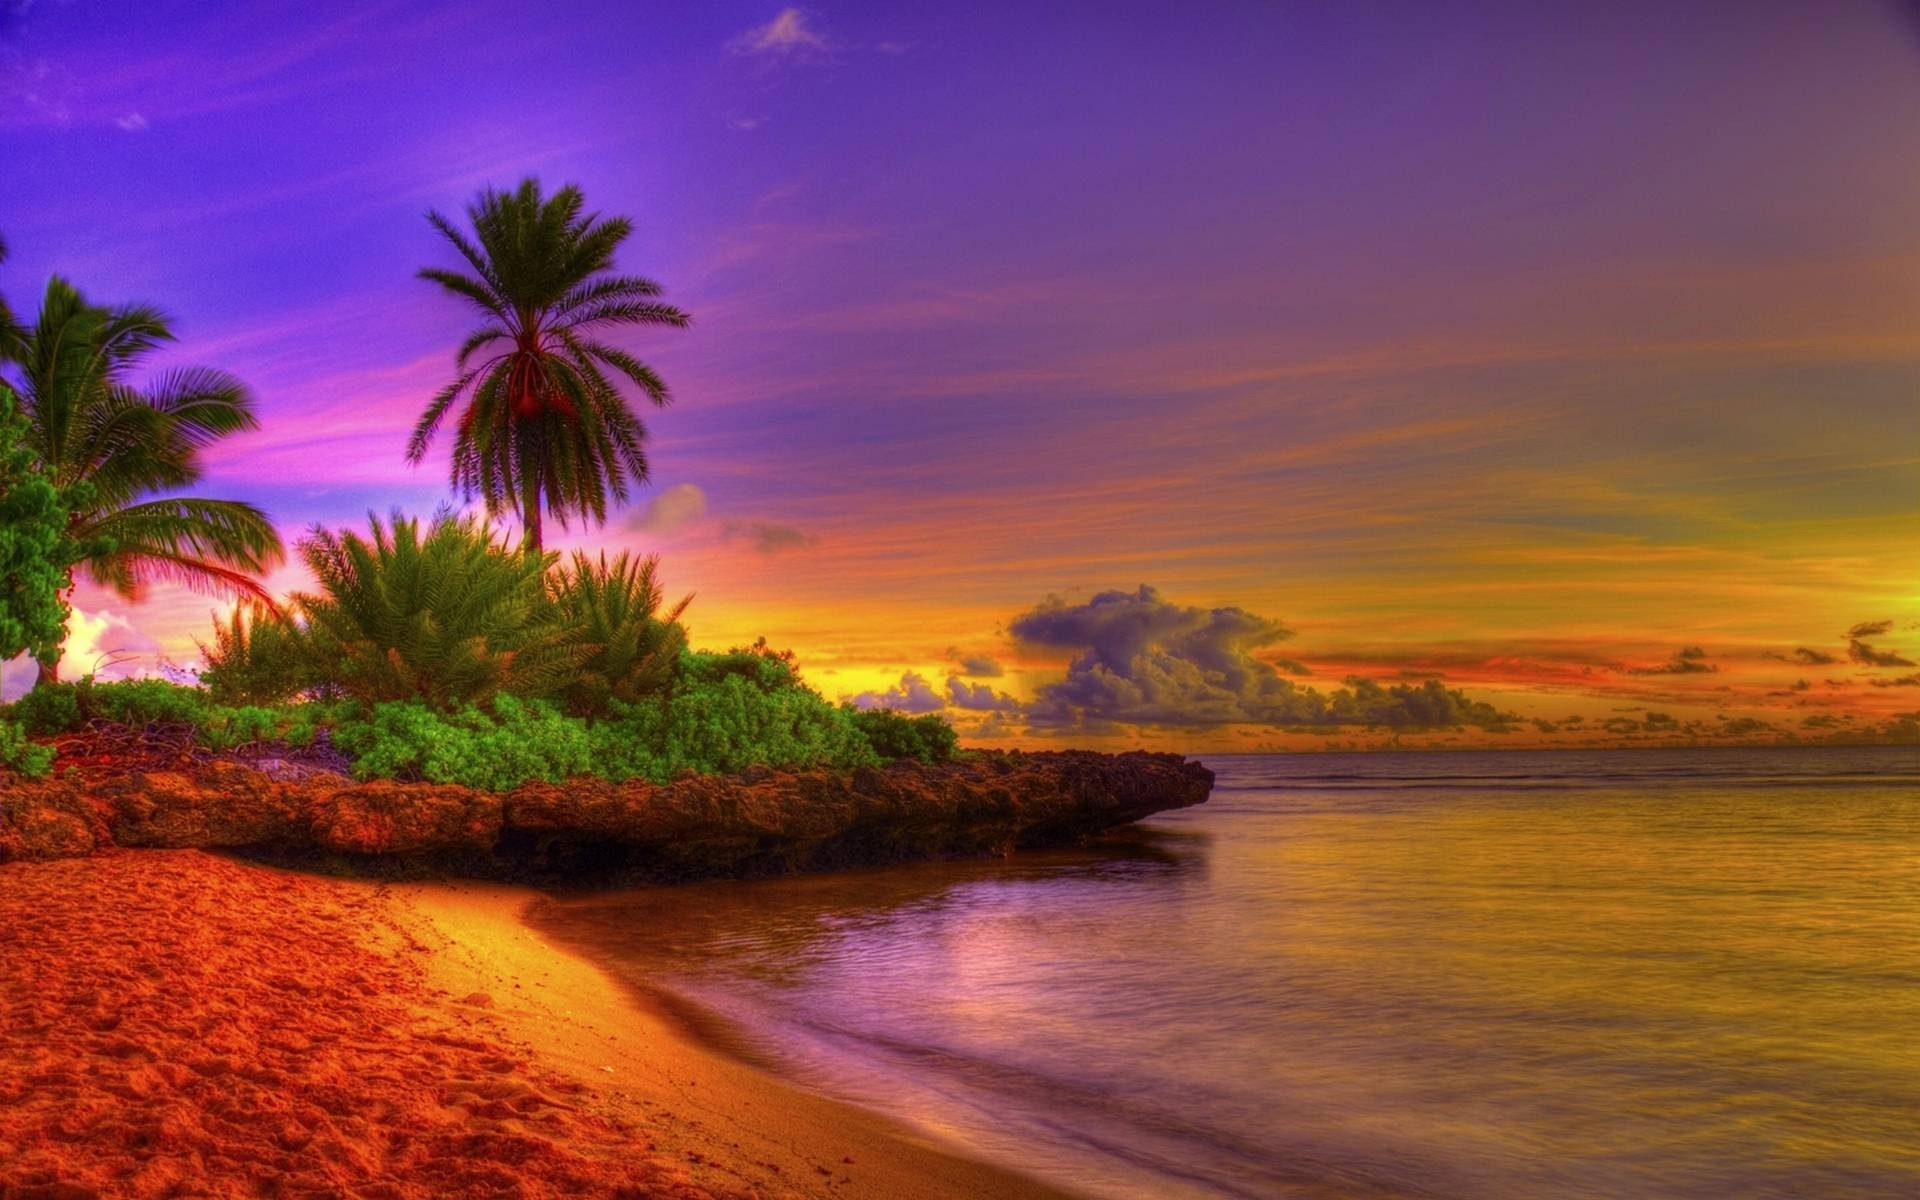 Pics In High Quality – Tropical Beach by Aoide Gealy